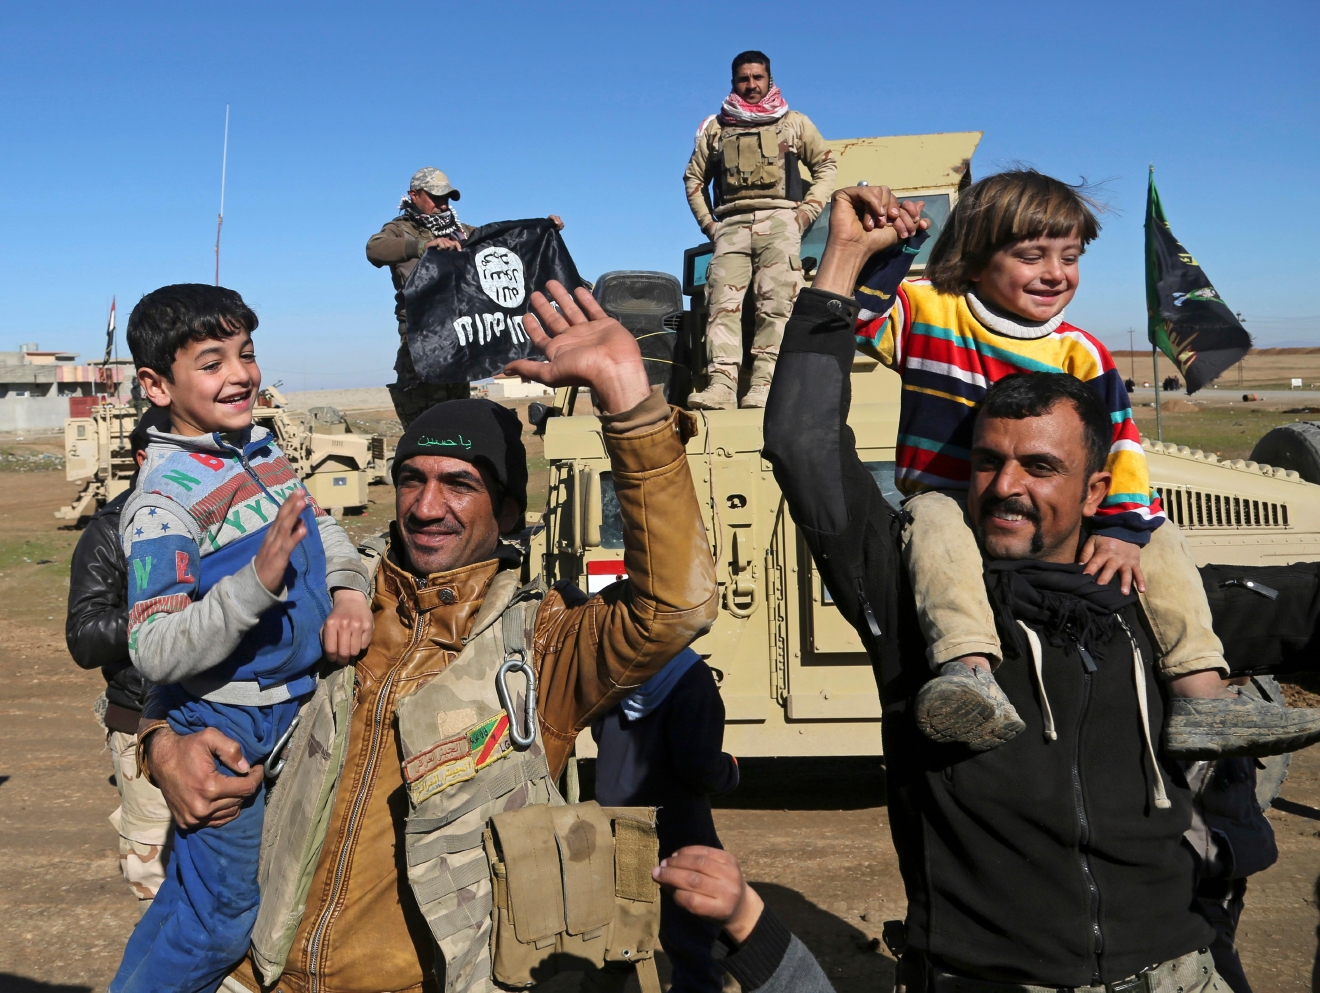 Iraqi Army soldiers celebrate with residents of liberated neighborhoods as they hold upside down a flag of the Islamic State group, in the eastern side of Mosul, Iraq, Tuesday, Jan. 24, 2017. The U.N. and several aid organizations say an estimated 750,000 civilians are still living under Islamic State rule in Mosul despite recent advances by Iraqi forces. Lise Grande, the U.N. Humanitarian Coordinator for Iraq, said in a statement Tuesday that the cost of food and basic goods is soaring, water and electricity are intermittent and that some residents are forced to burn furniture to keep warm. (AP Photo/Khalid Mohammed)